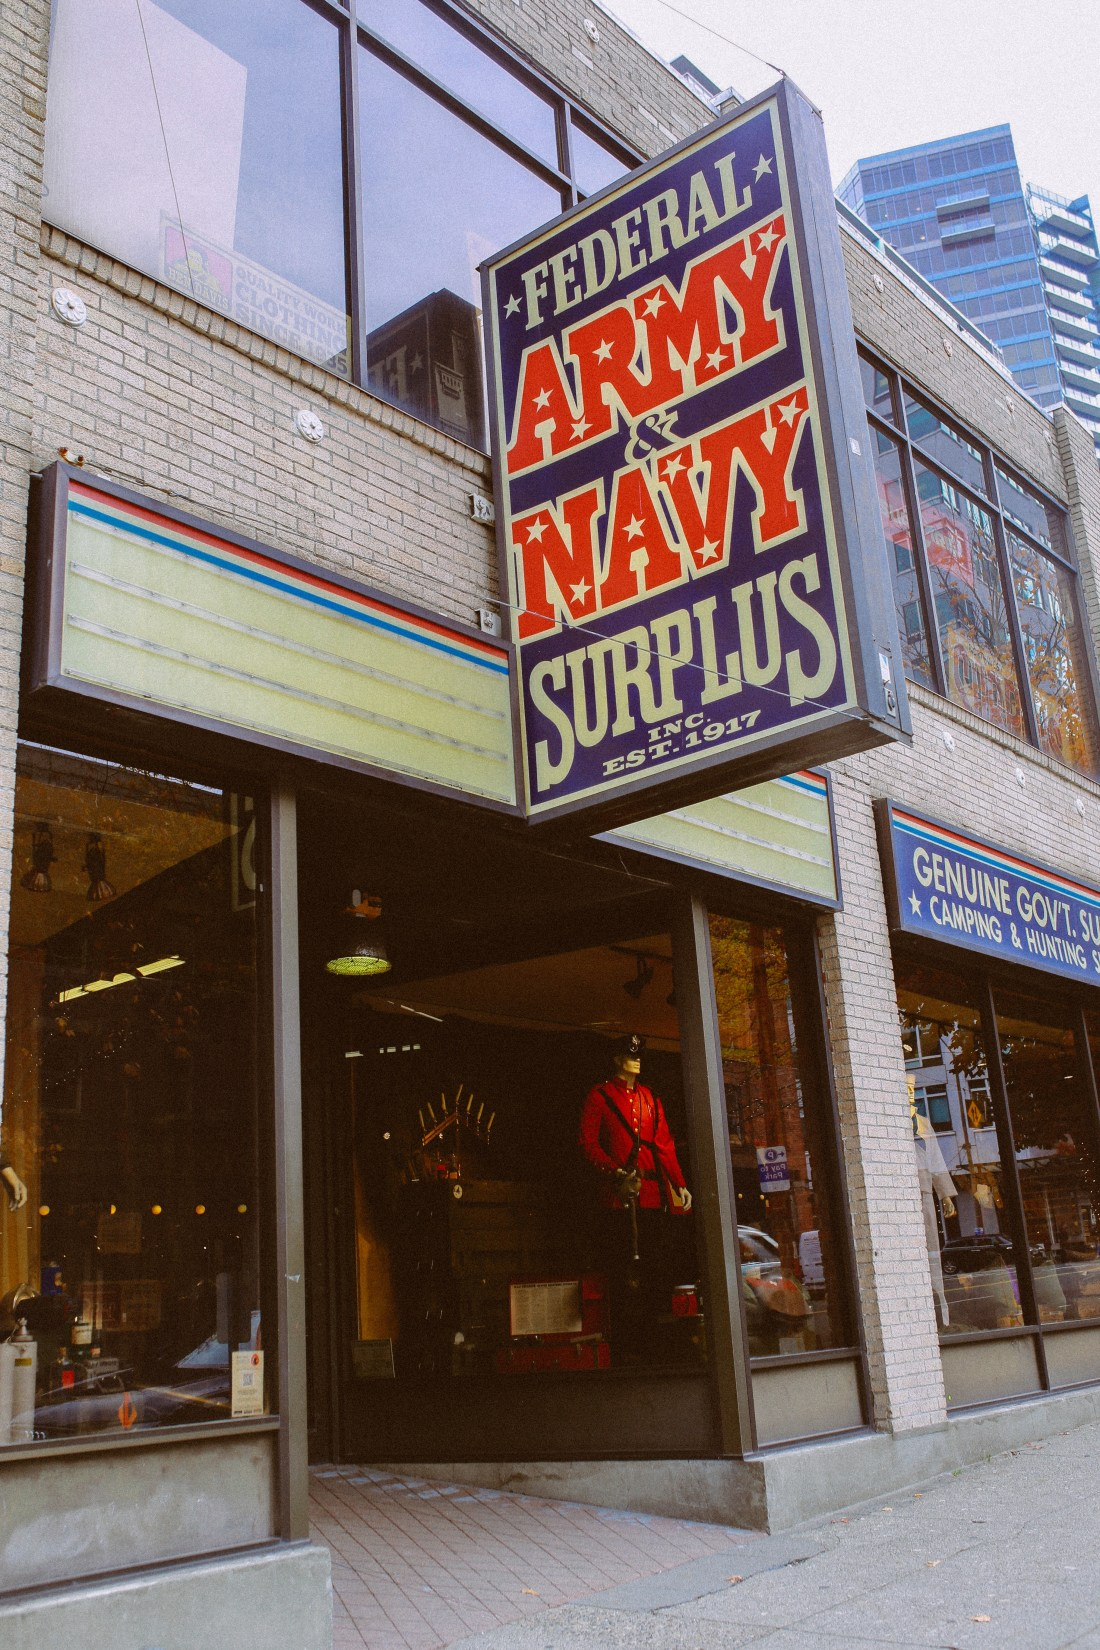 Storefront of Federal Army & Navy Surplus in Seattle